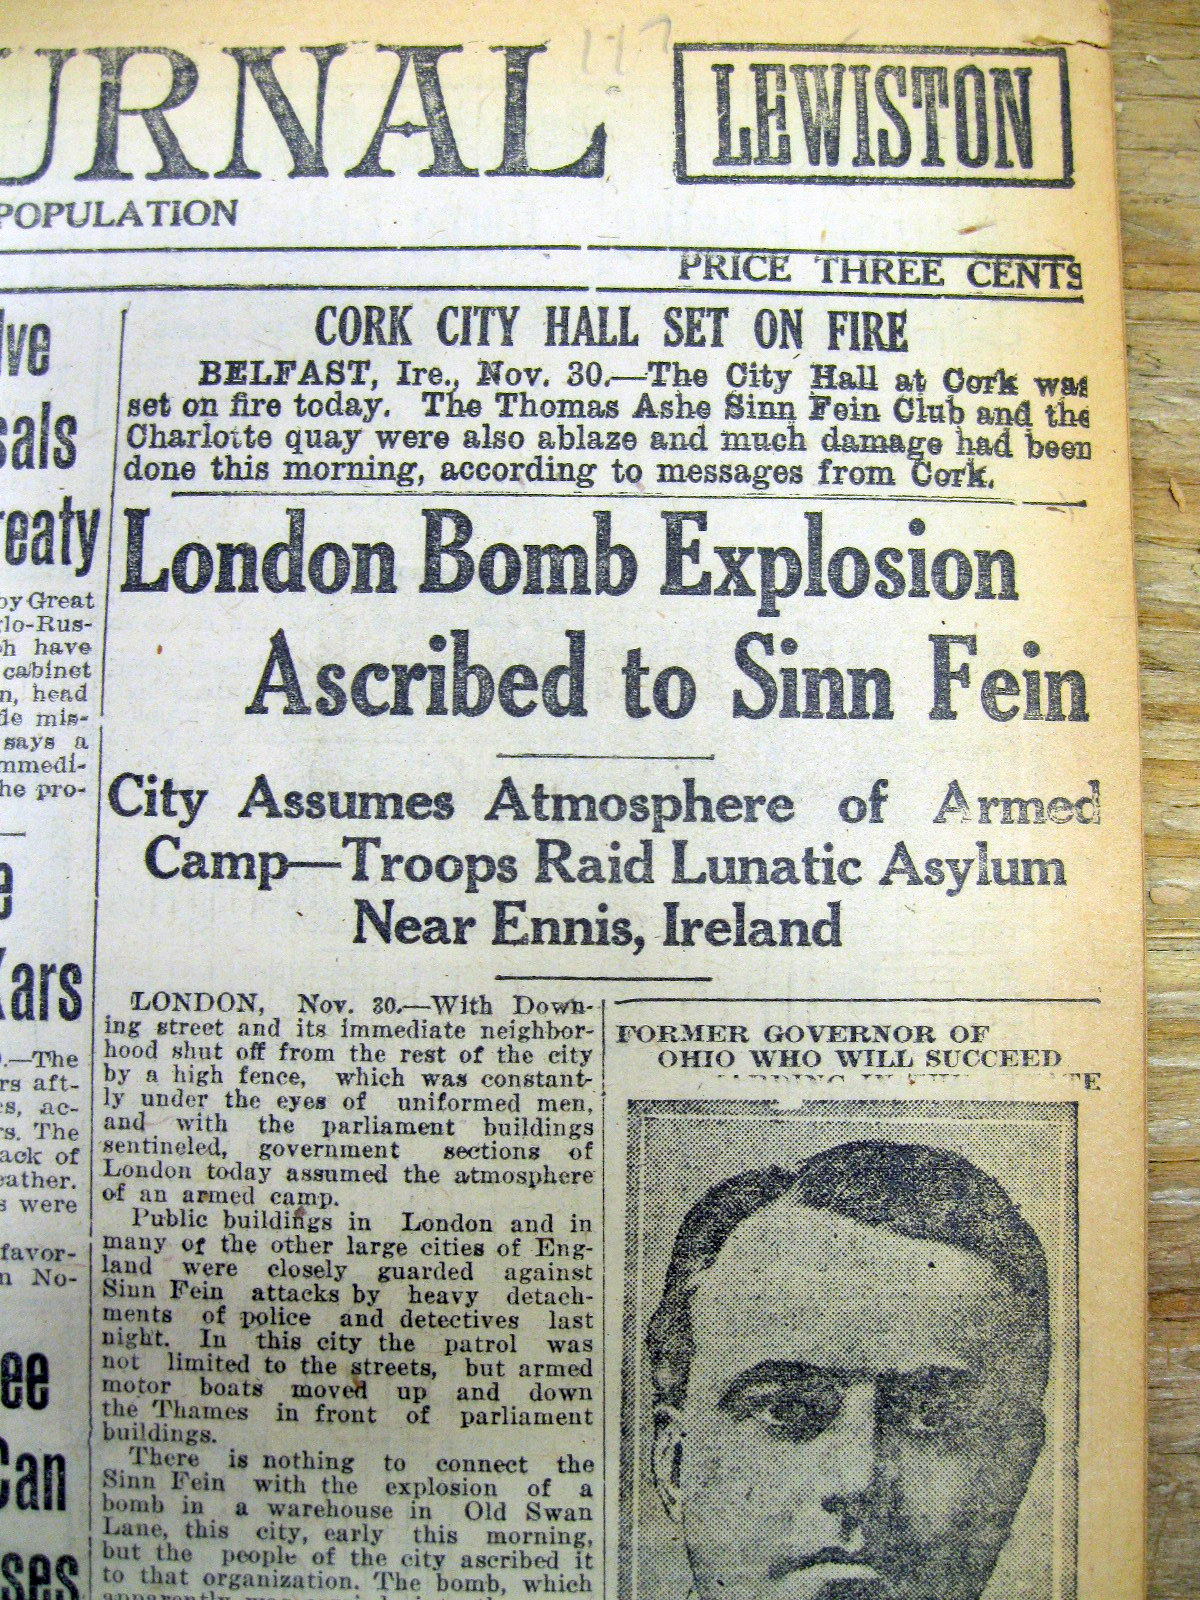 1920 bloody sunday A building burns in londonderry, northern ireland, in the aftermath of bloody sunday thirteen people were shot dead on january 30, 1972 when british paratroopers opened fire on a civil rights.